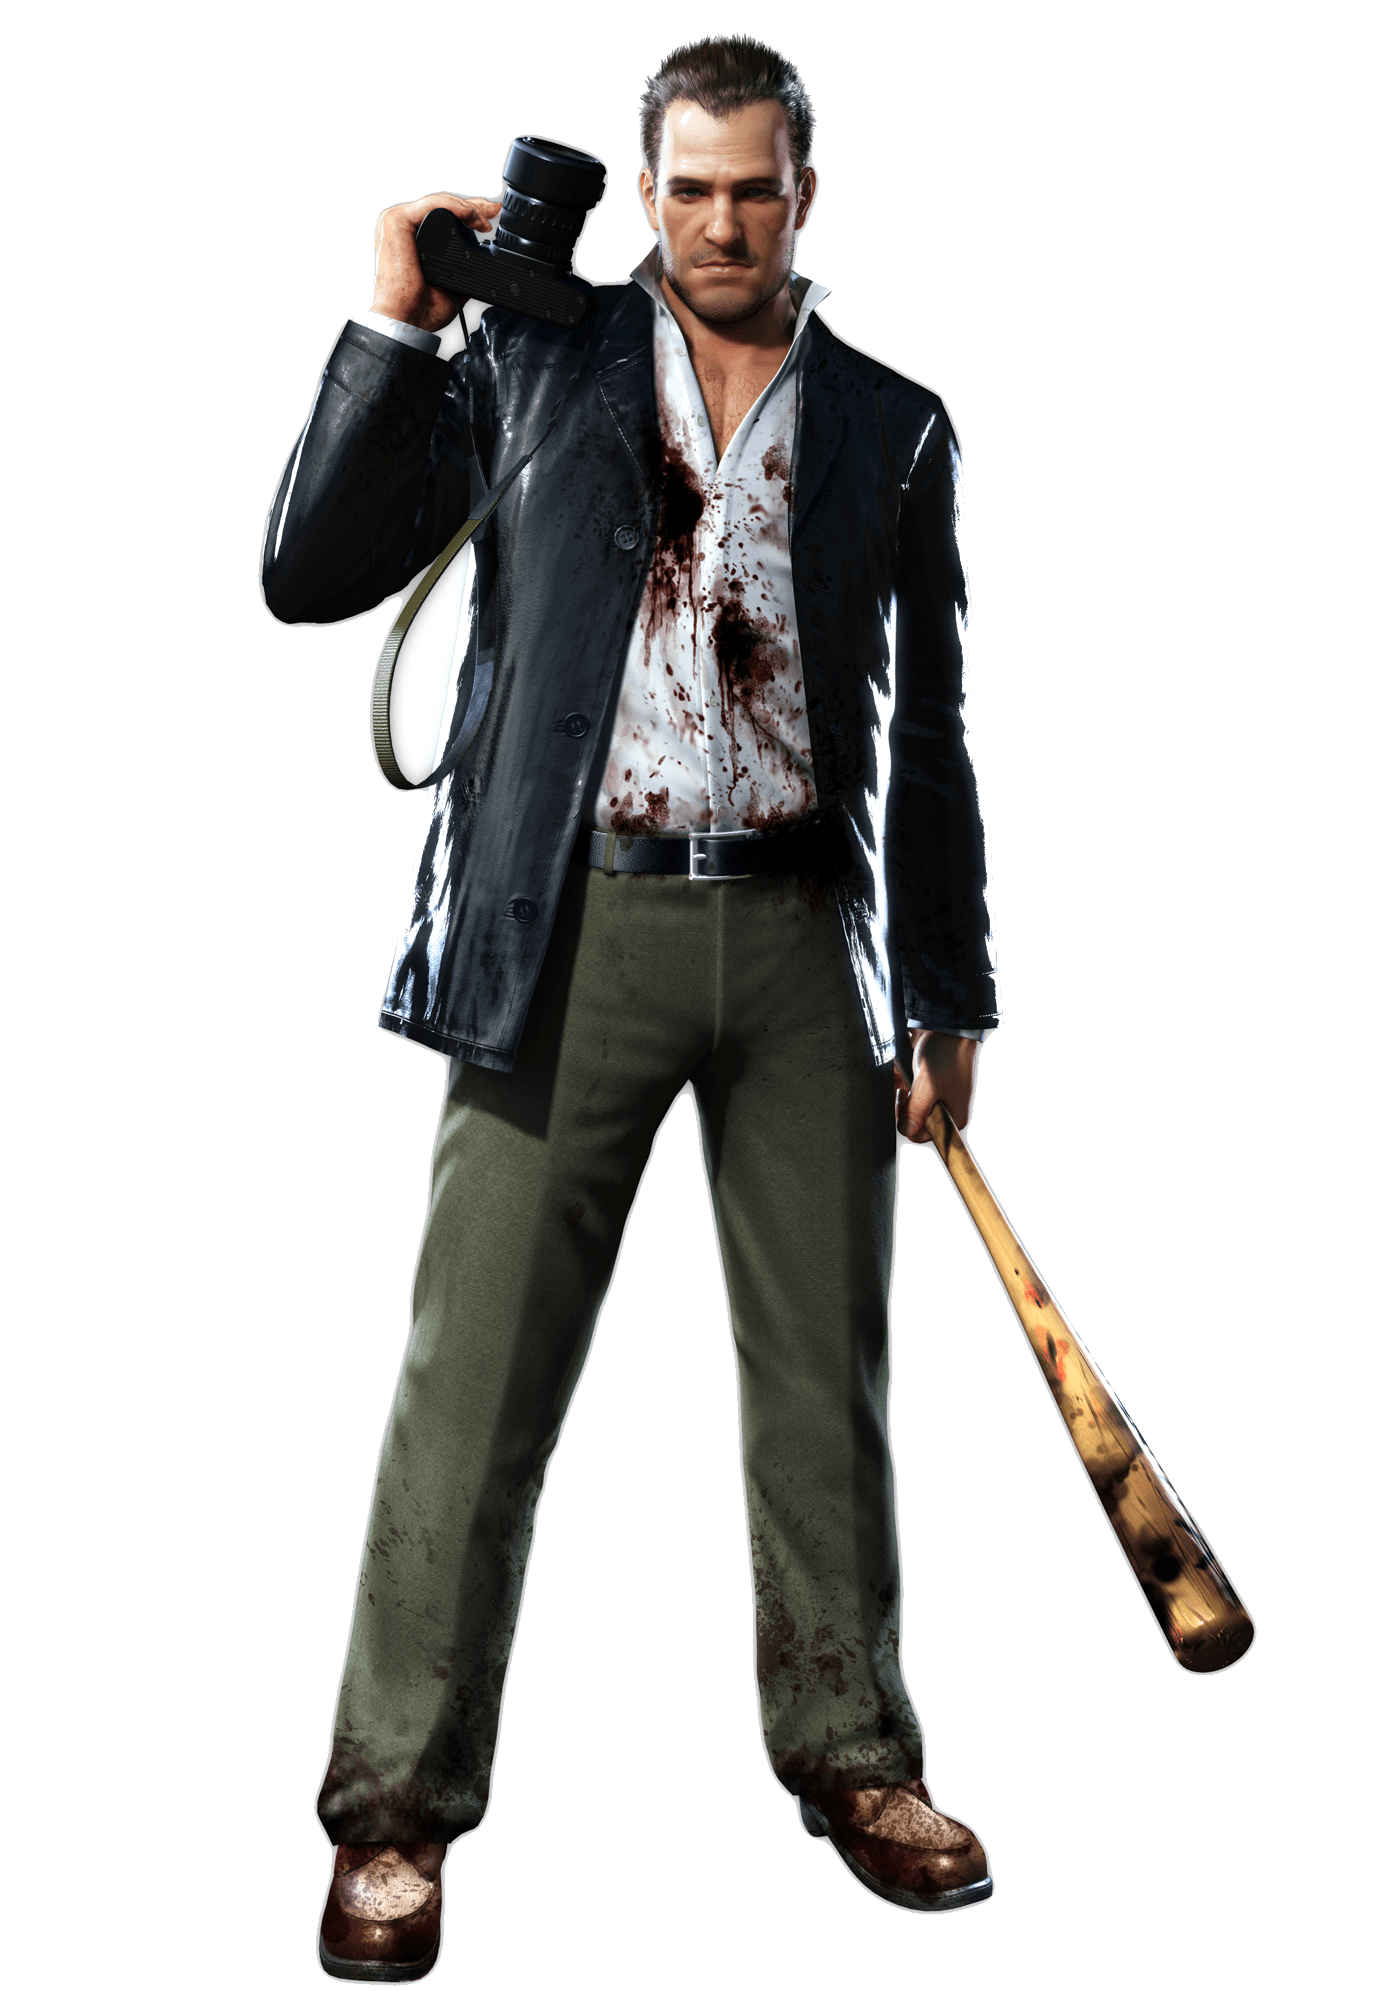 Dead rising 2 png. Baseball transparent stickpng